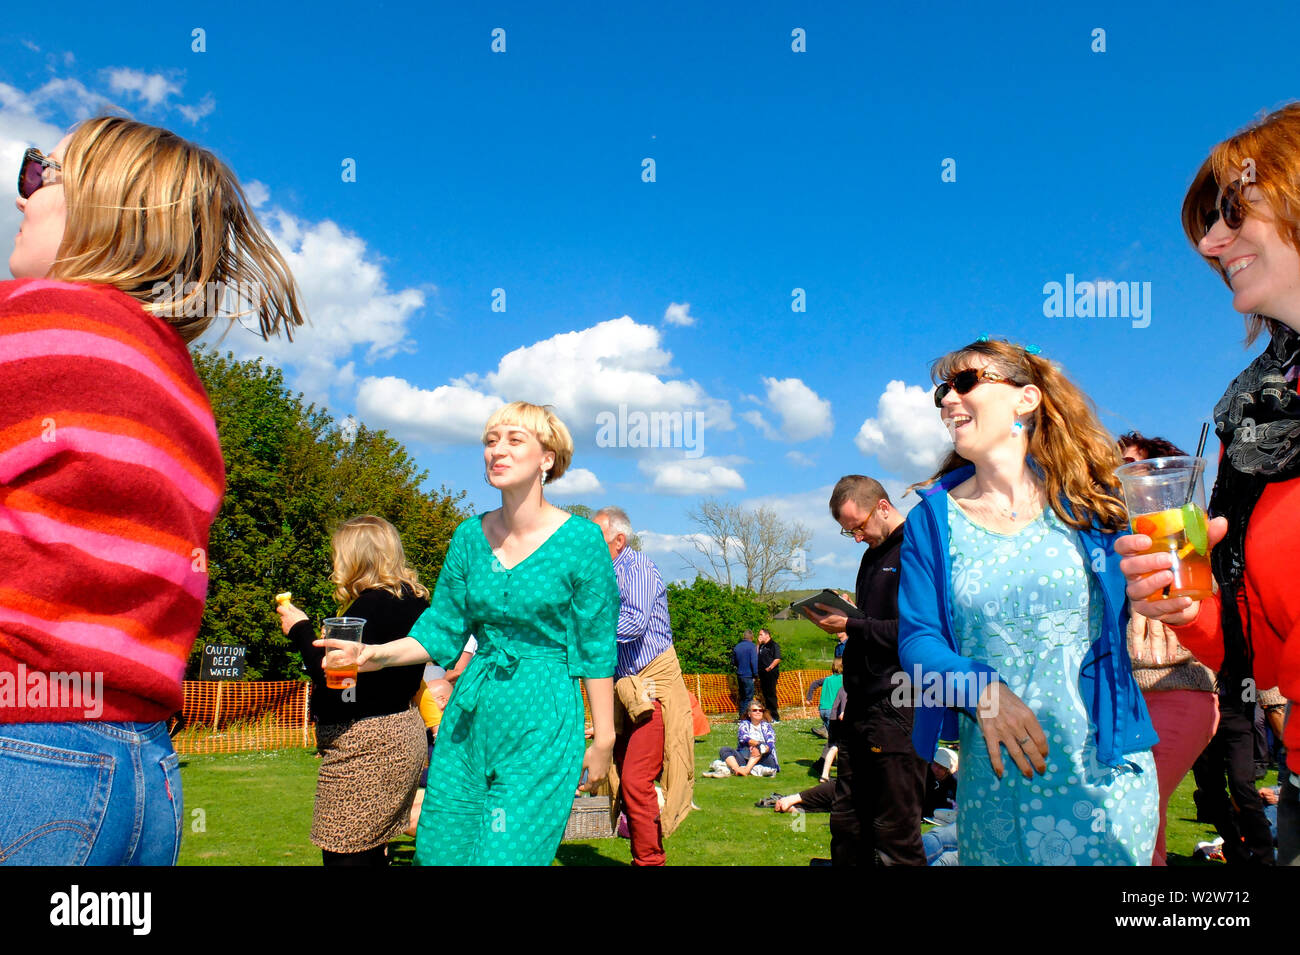 Revellers dancing at the Wolverton Folk and Blues Fair 2019 on the grounds of Wolverton Manor, Shorwell, Isle of Wight, England, UK. Stock Photo